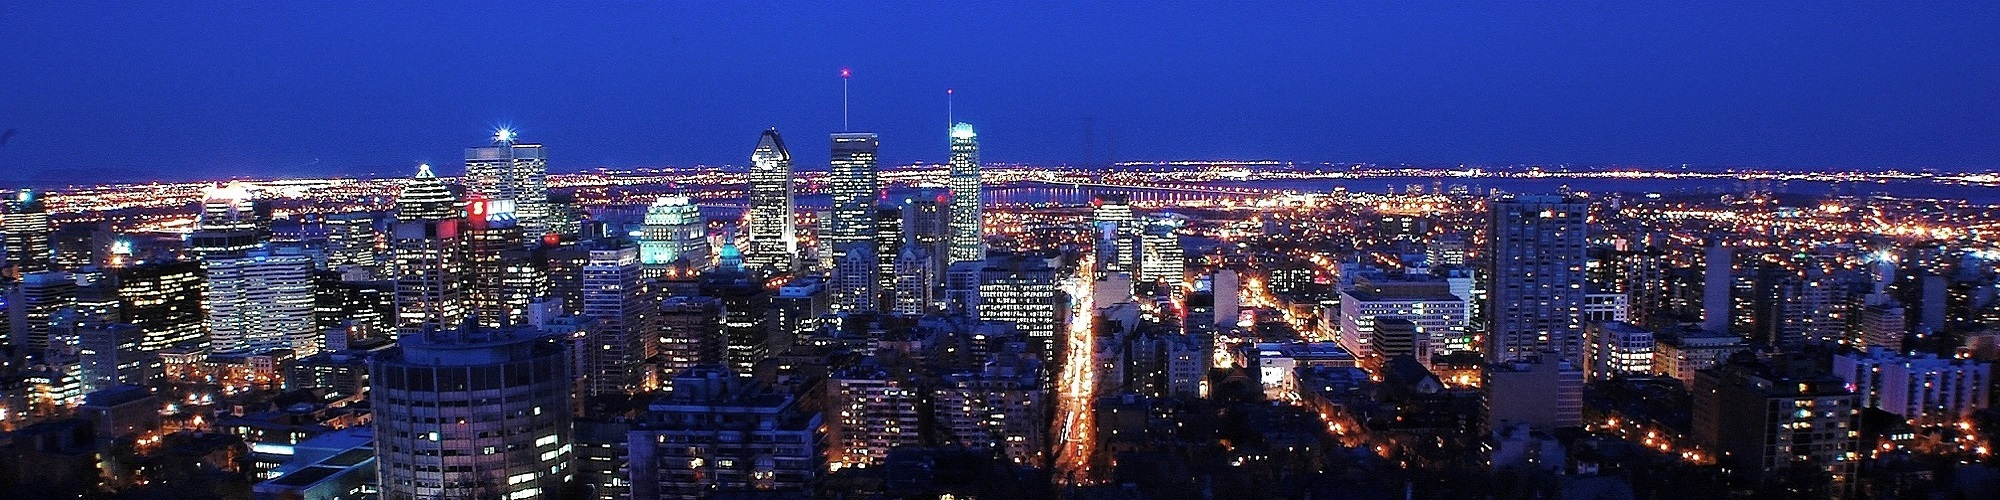 montreal-910653